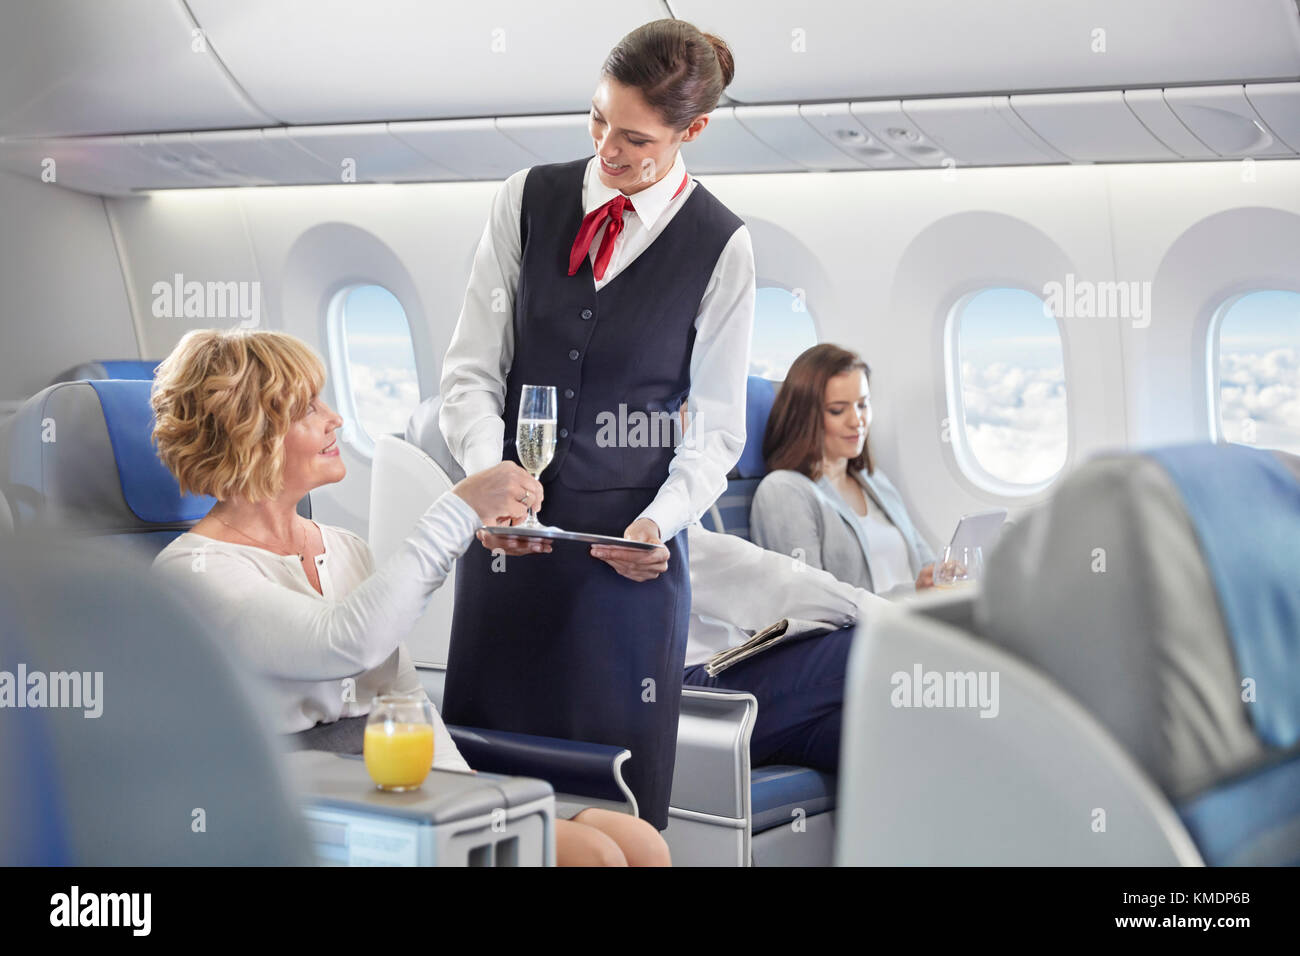 Flight attendant serving champagne to woman in first class on airplane - Stock Image